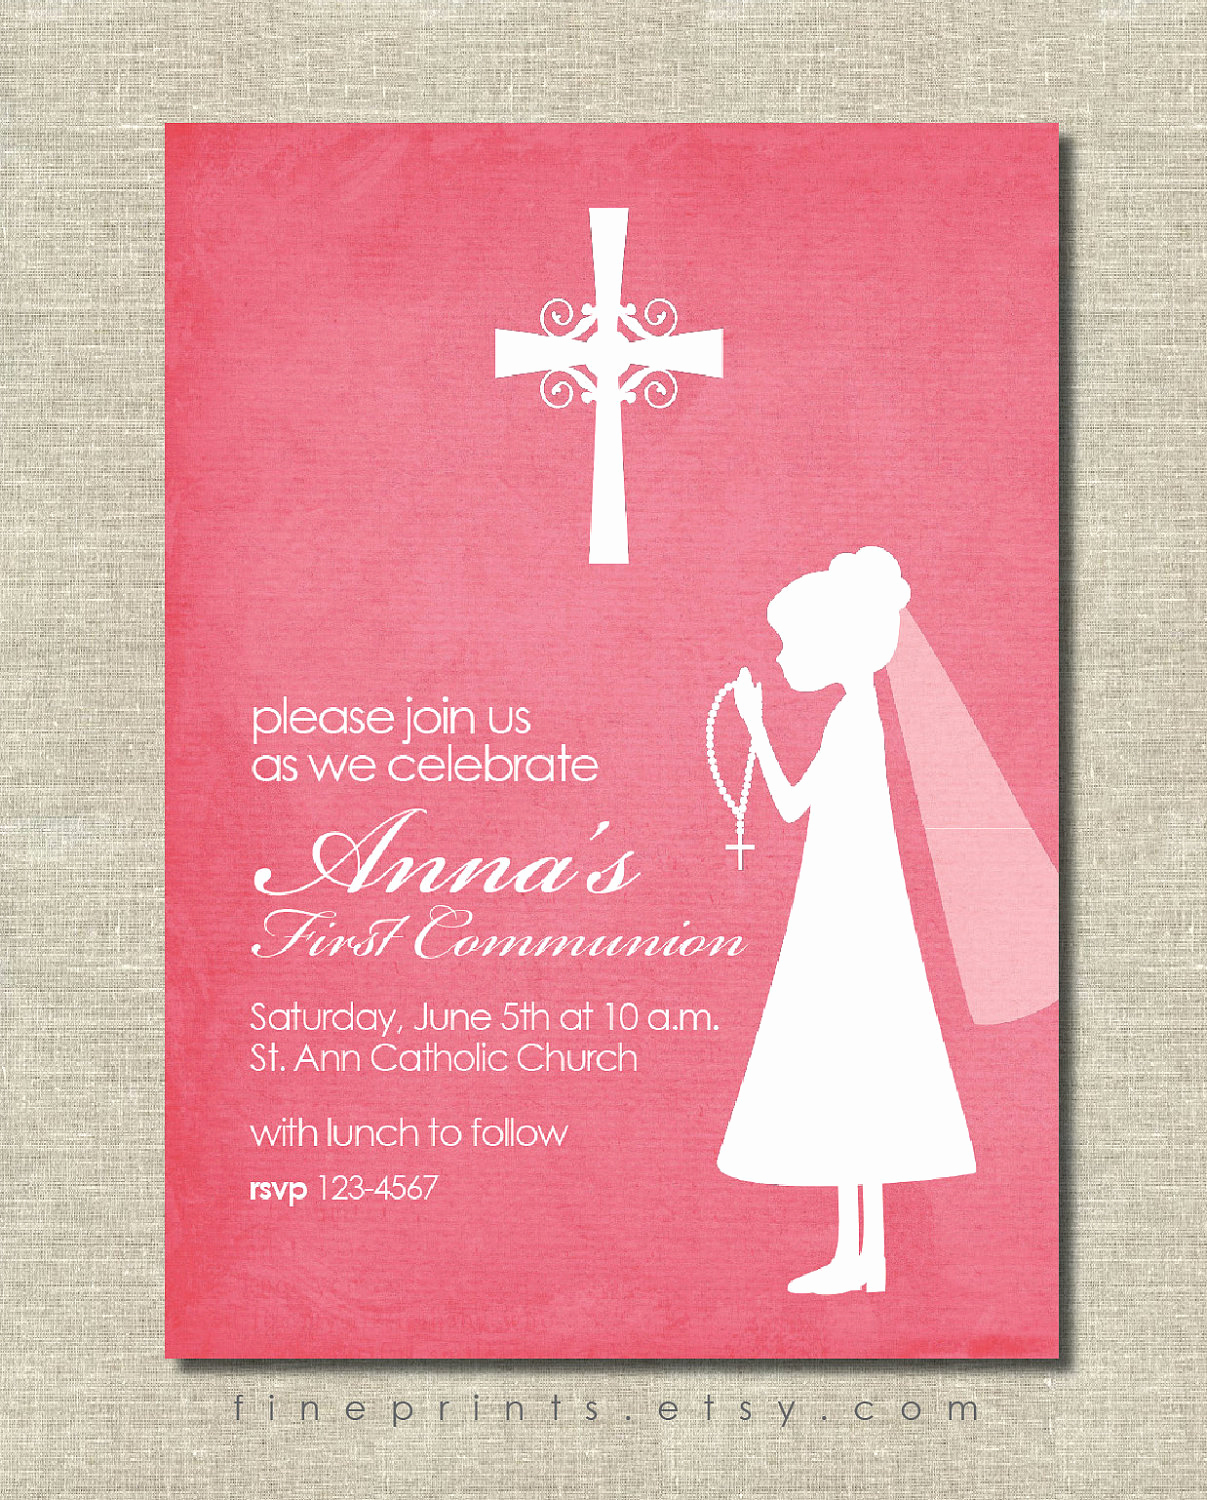 First Communion Invitation Girl Fresh First Munion Invitation Pink with Silhouette